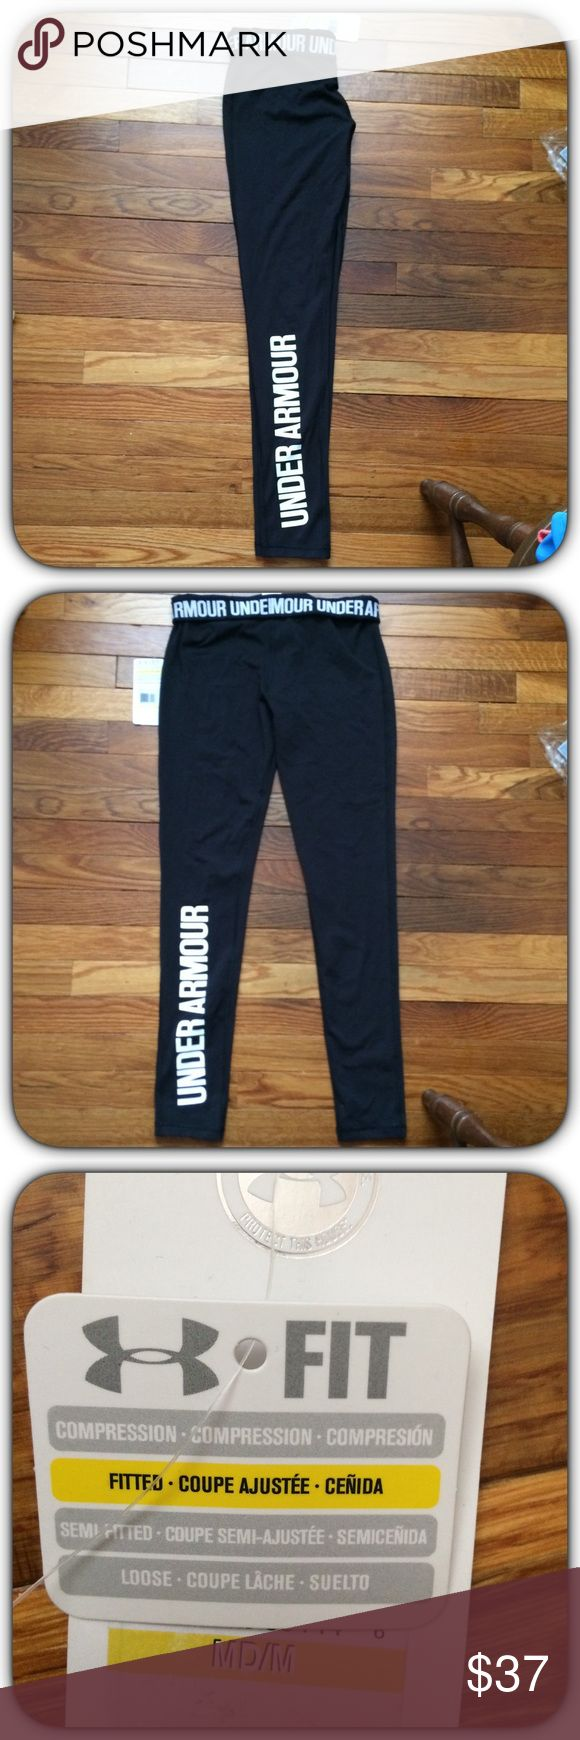 NWT! Under Armour Leggings NWT! Under Armour Logo Leggings! Size Medium Fitted! Black With White Logo! Brand New Excellent Condition! ** Free Under Armour Headband W/ Every UA Purchase In My Closet While Supplies Last!!! **   ✨ Repeated Buyer Discounts Offered & Available!!! ✨*Save to bundle more UA in my closet! * Under Armour Pants Leggings